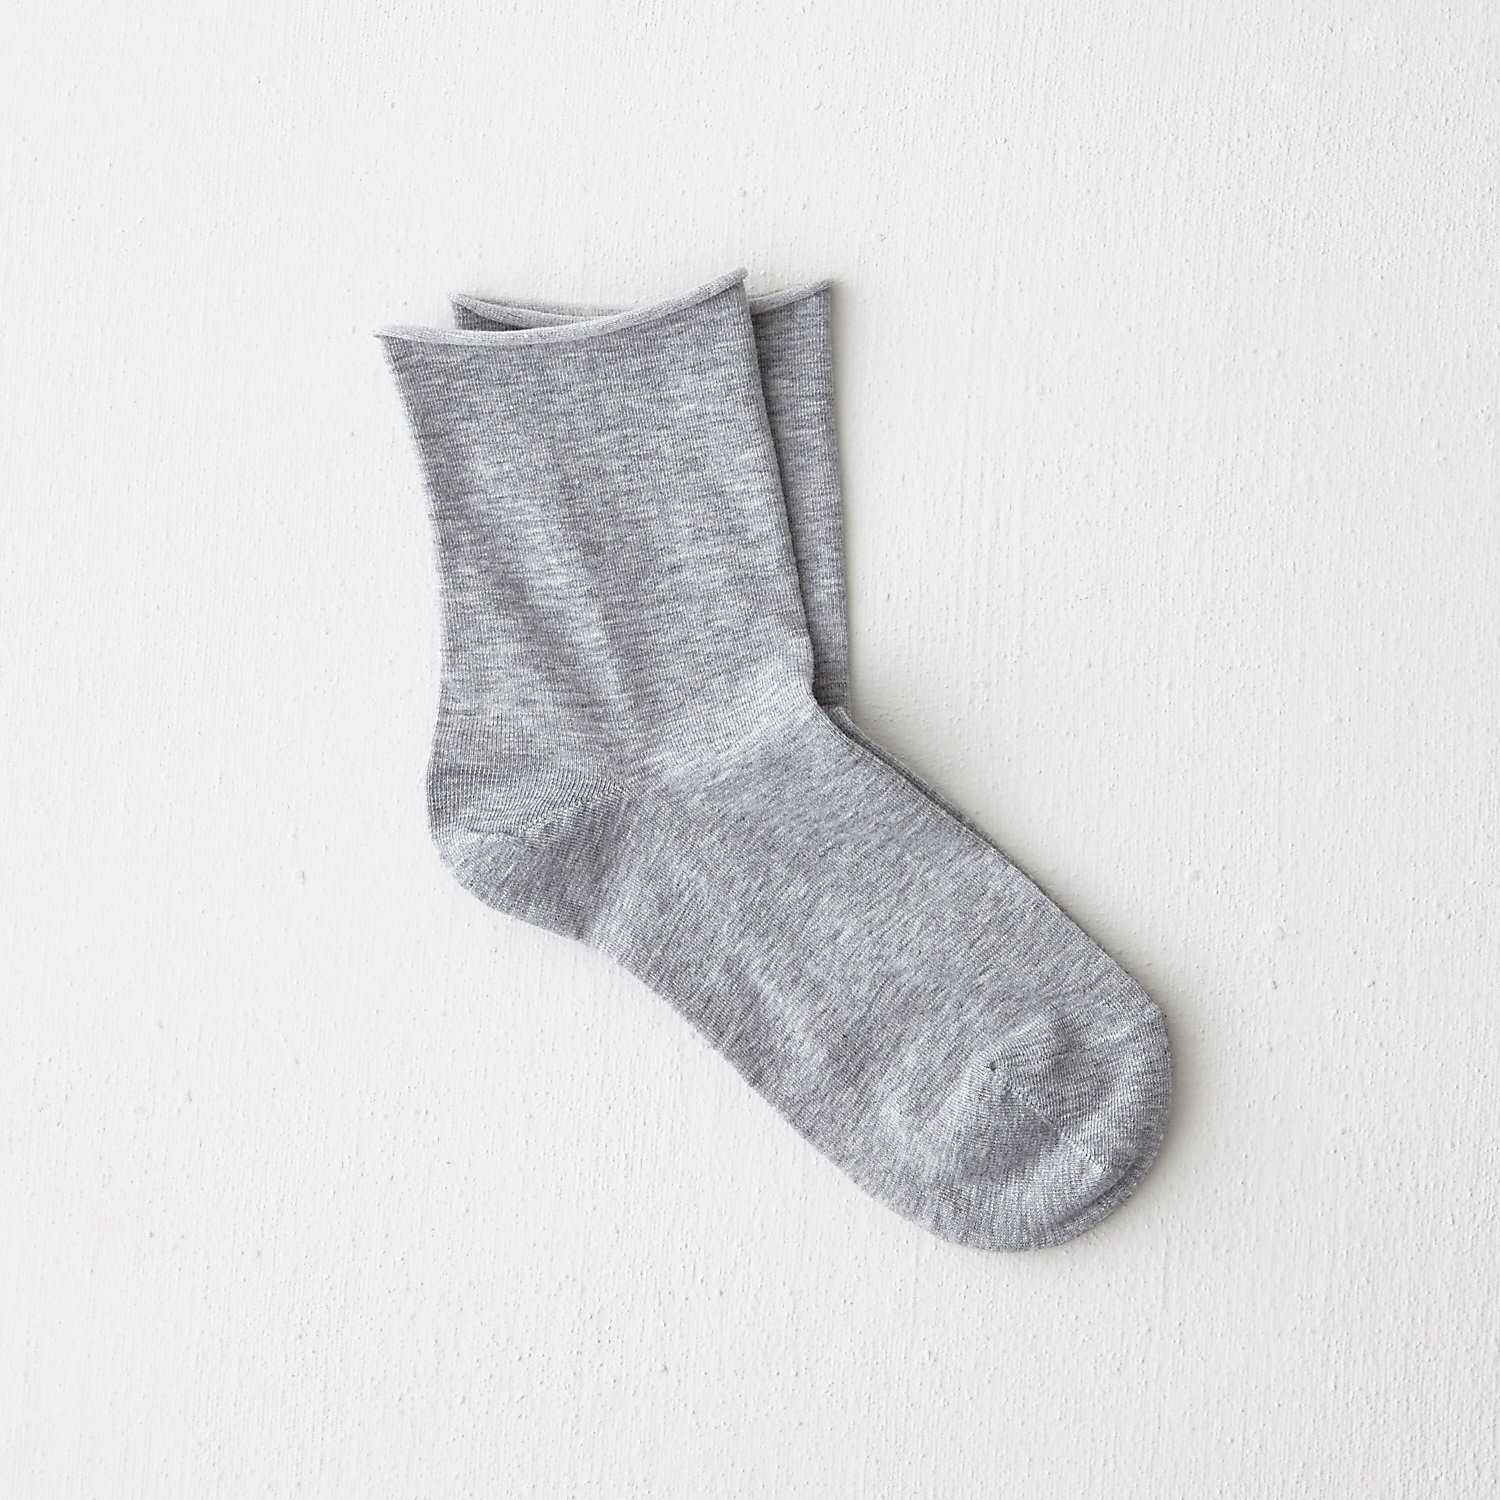 VELVETY COTTON SOCKS